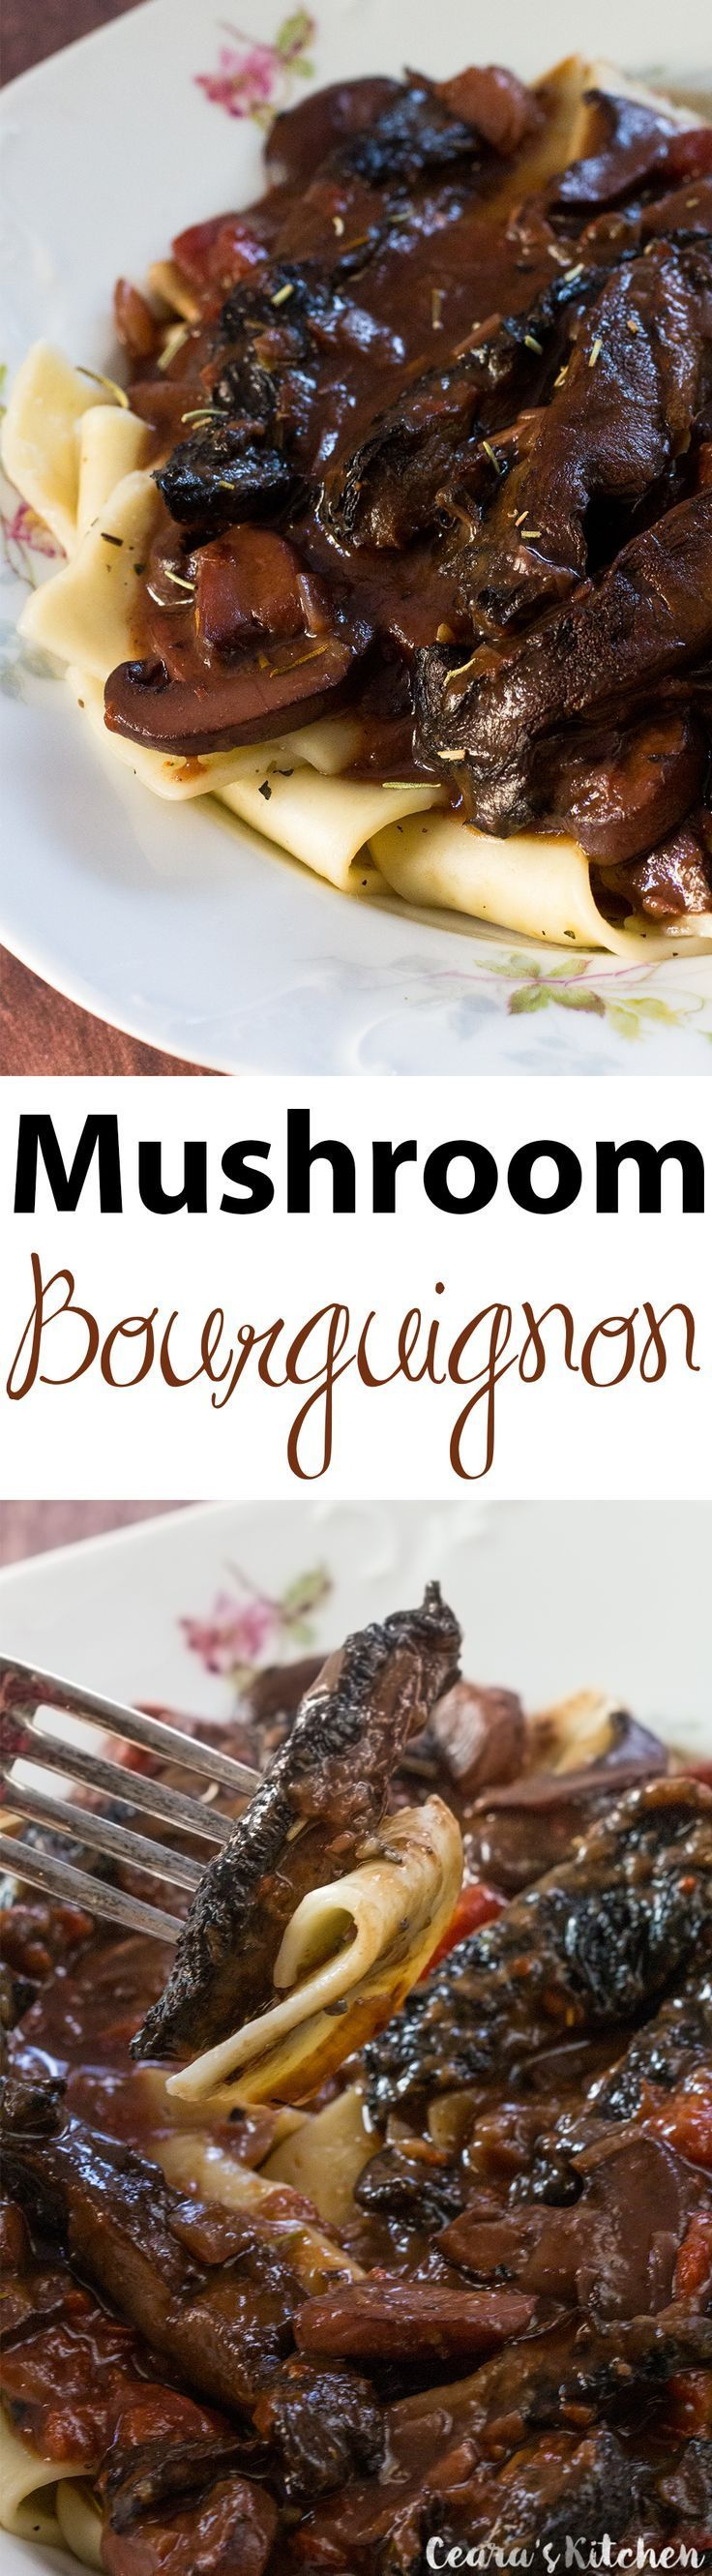 Vegan Beef Bourguignon made with a hearty, meaty & incredibly flavorful mushroom and and red wine sauce. Serve over pasta or potatoes and with fresh bread for the perfect, rustic meal! #Vegan #BeefBourguignon